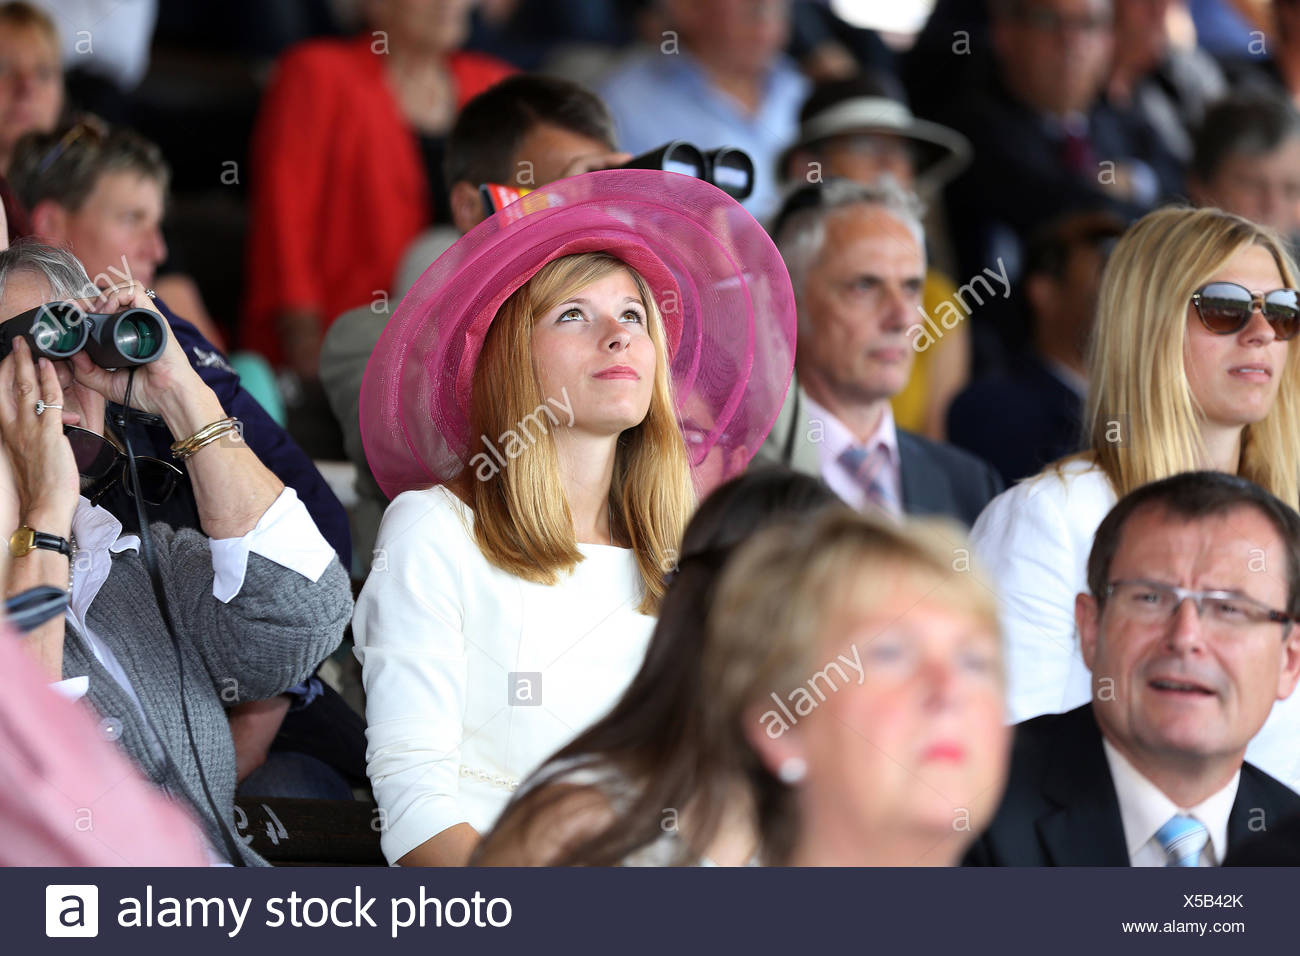 Iffezheim, Germany, people in horse racing - Stock Image